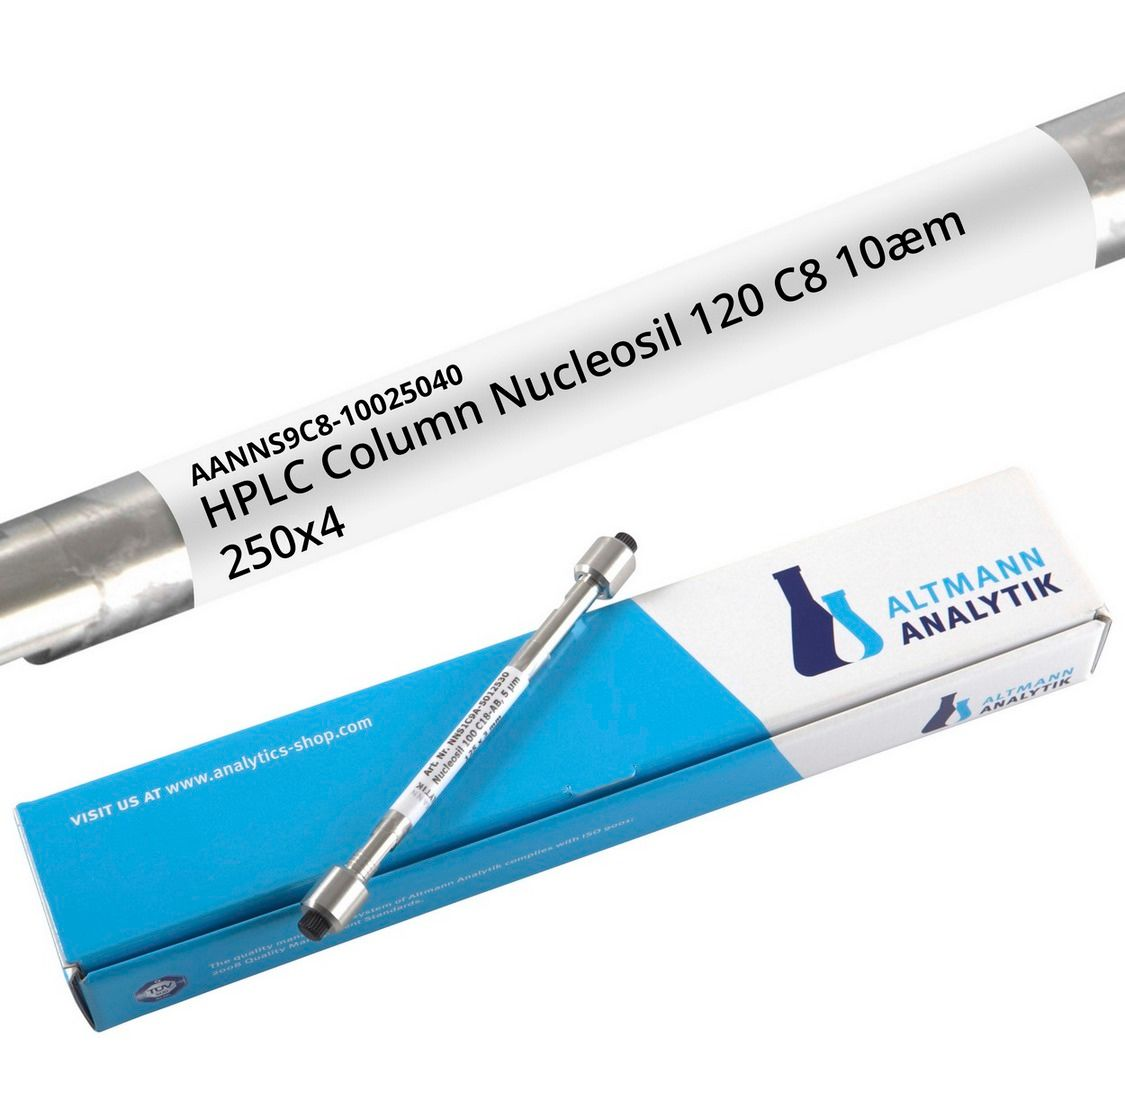 HPLC Column Nucleosil 120 C8 10µm 250x4 mm, 120A